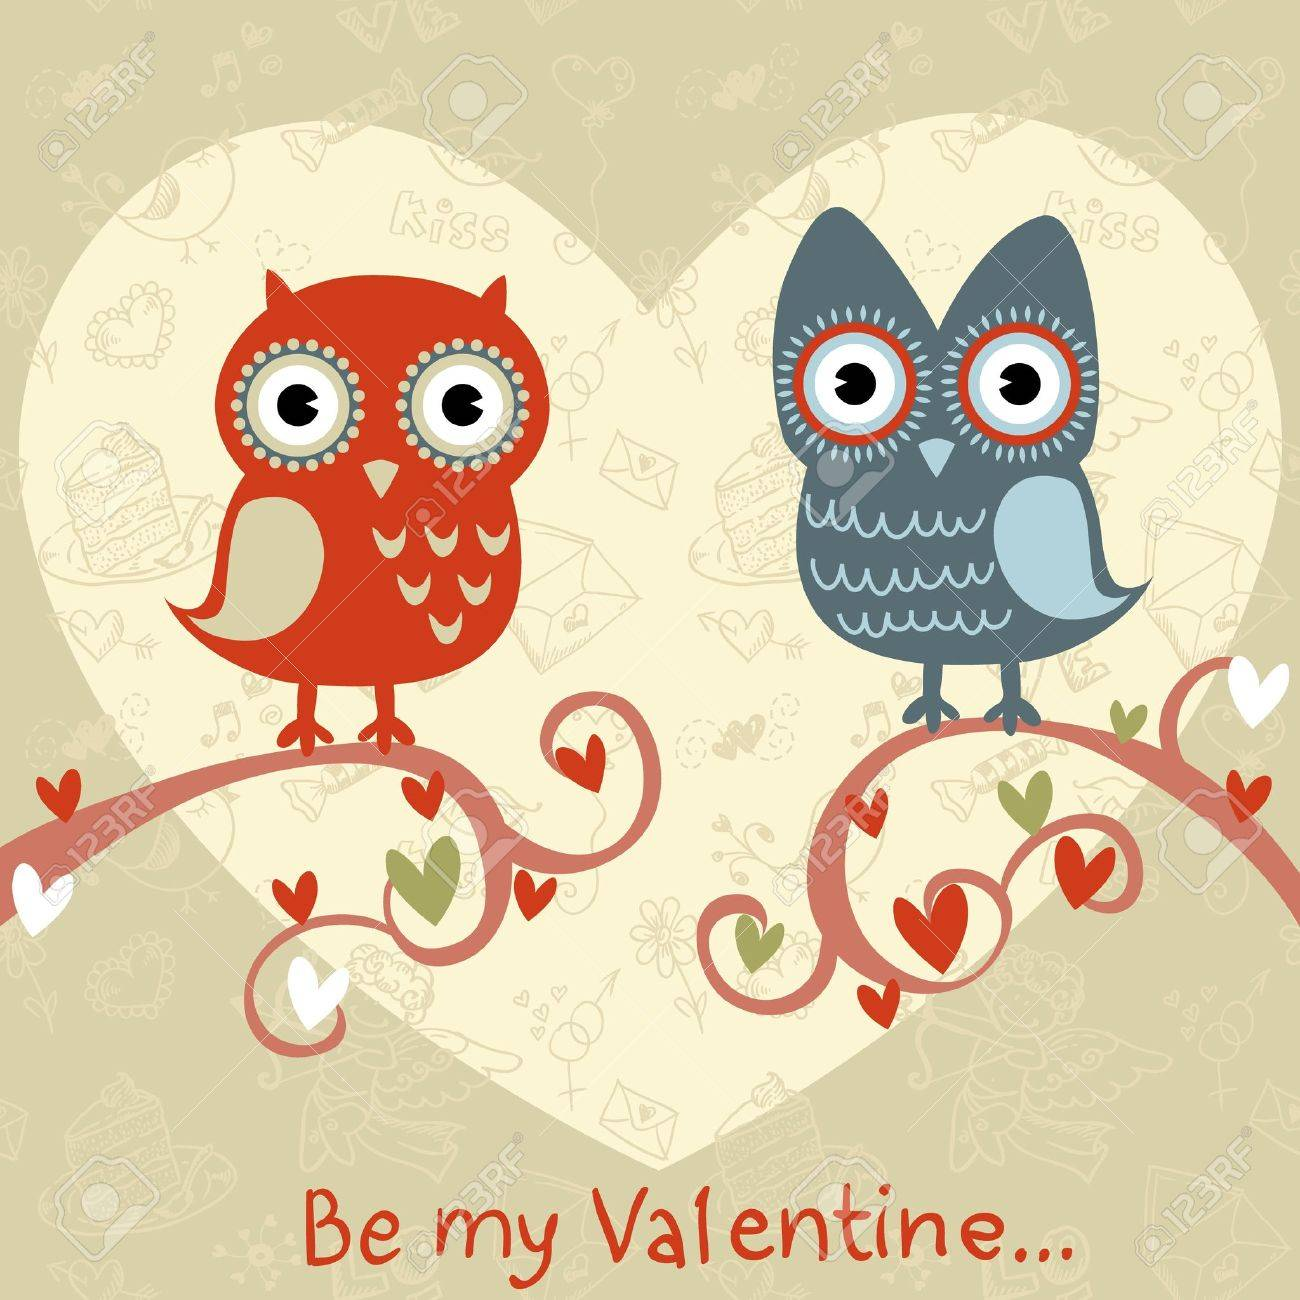 Valentine Love Card With Cute Romantic Owls And Hearts Royalty – Owl Valentine Card